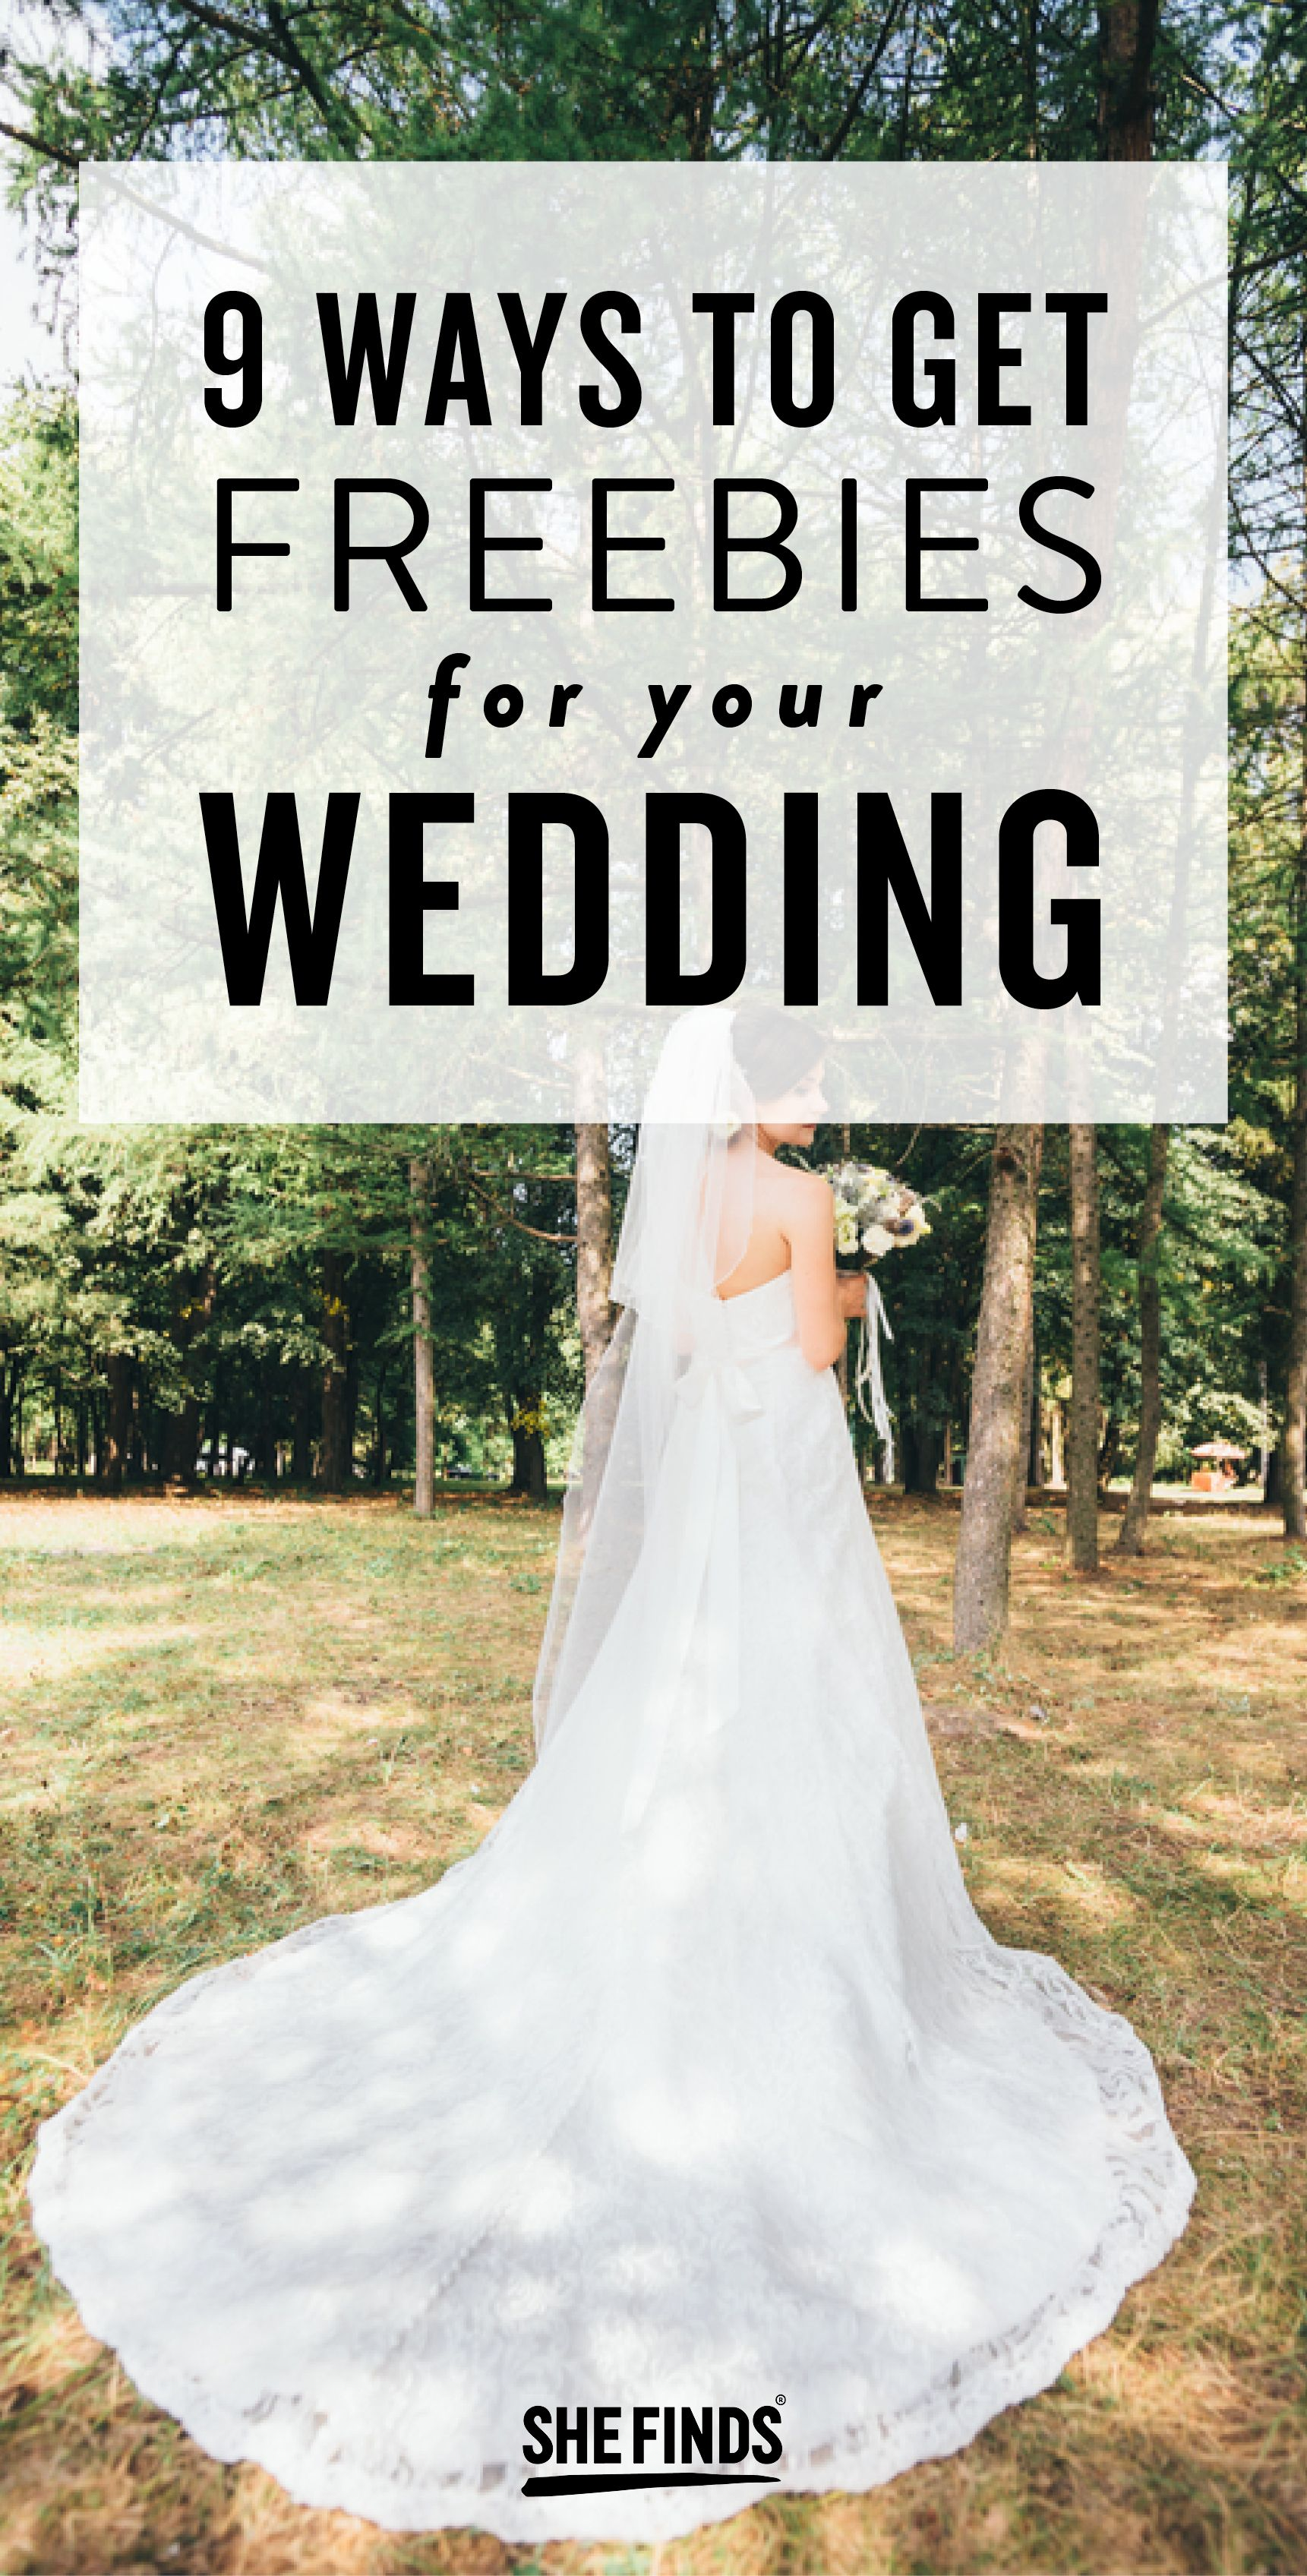 9 Ways To Get Freebies For Your Wedding TipsAdvice Pinterest